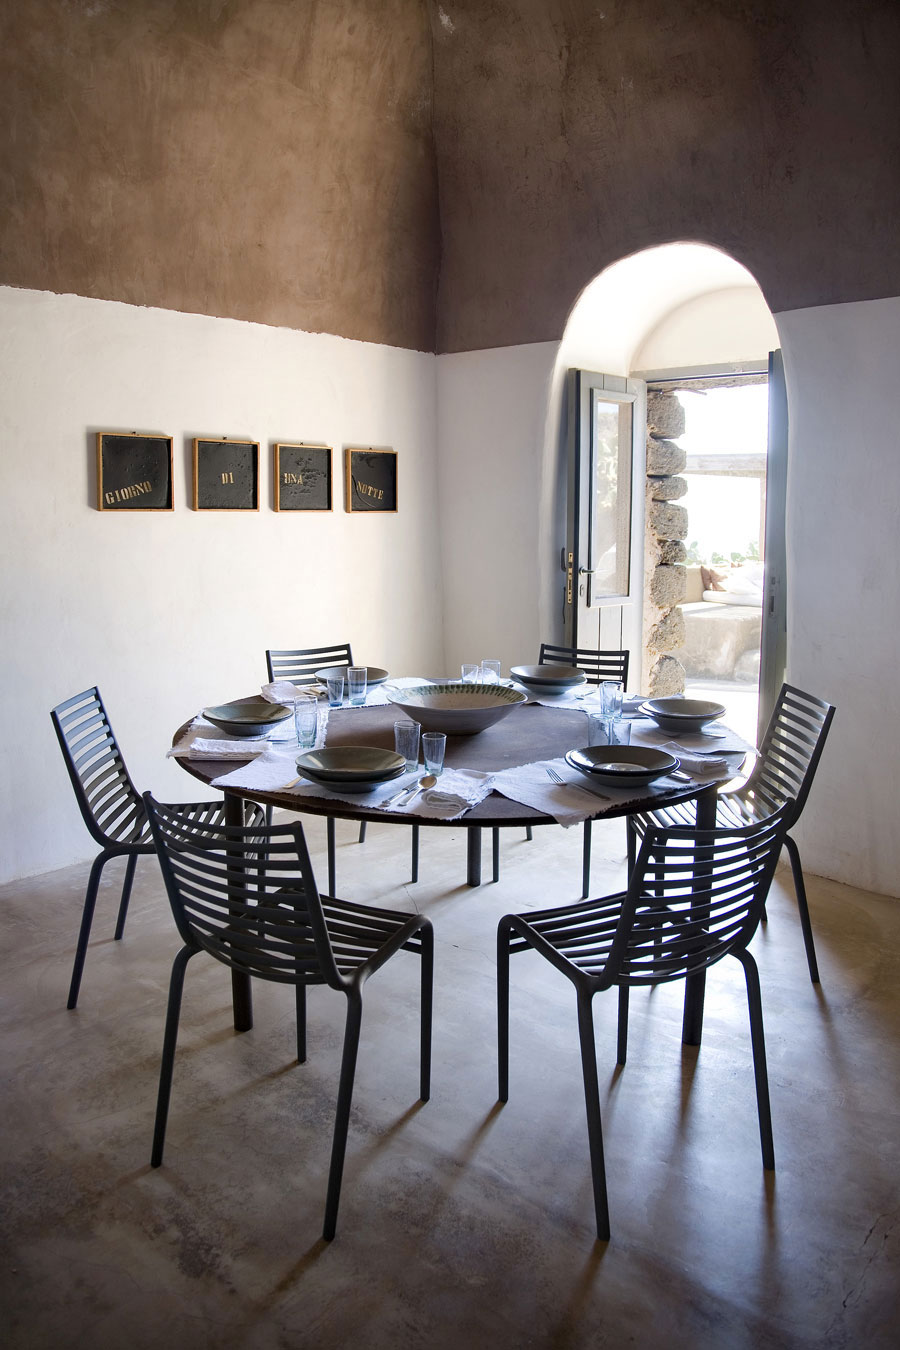 Dining SpaceLiving Space, Casa Albanese, Island of Pantelleria, Italy by ASA Studio Albanese